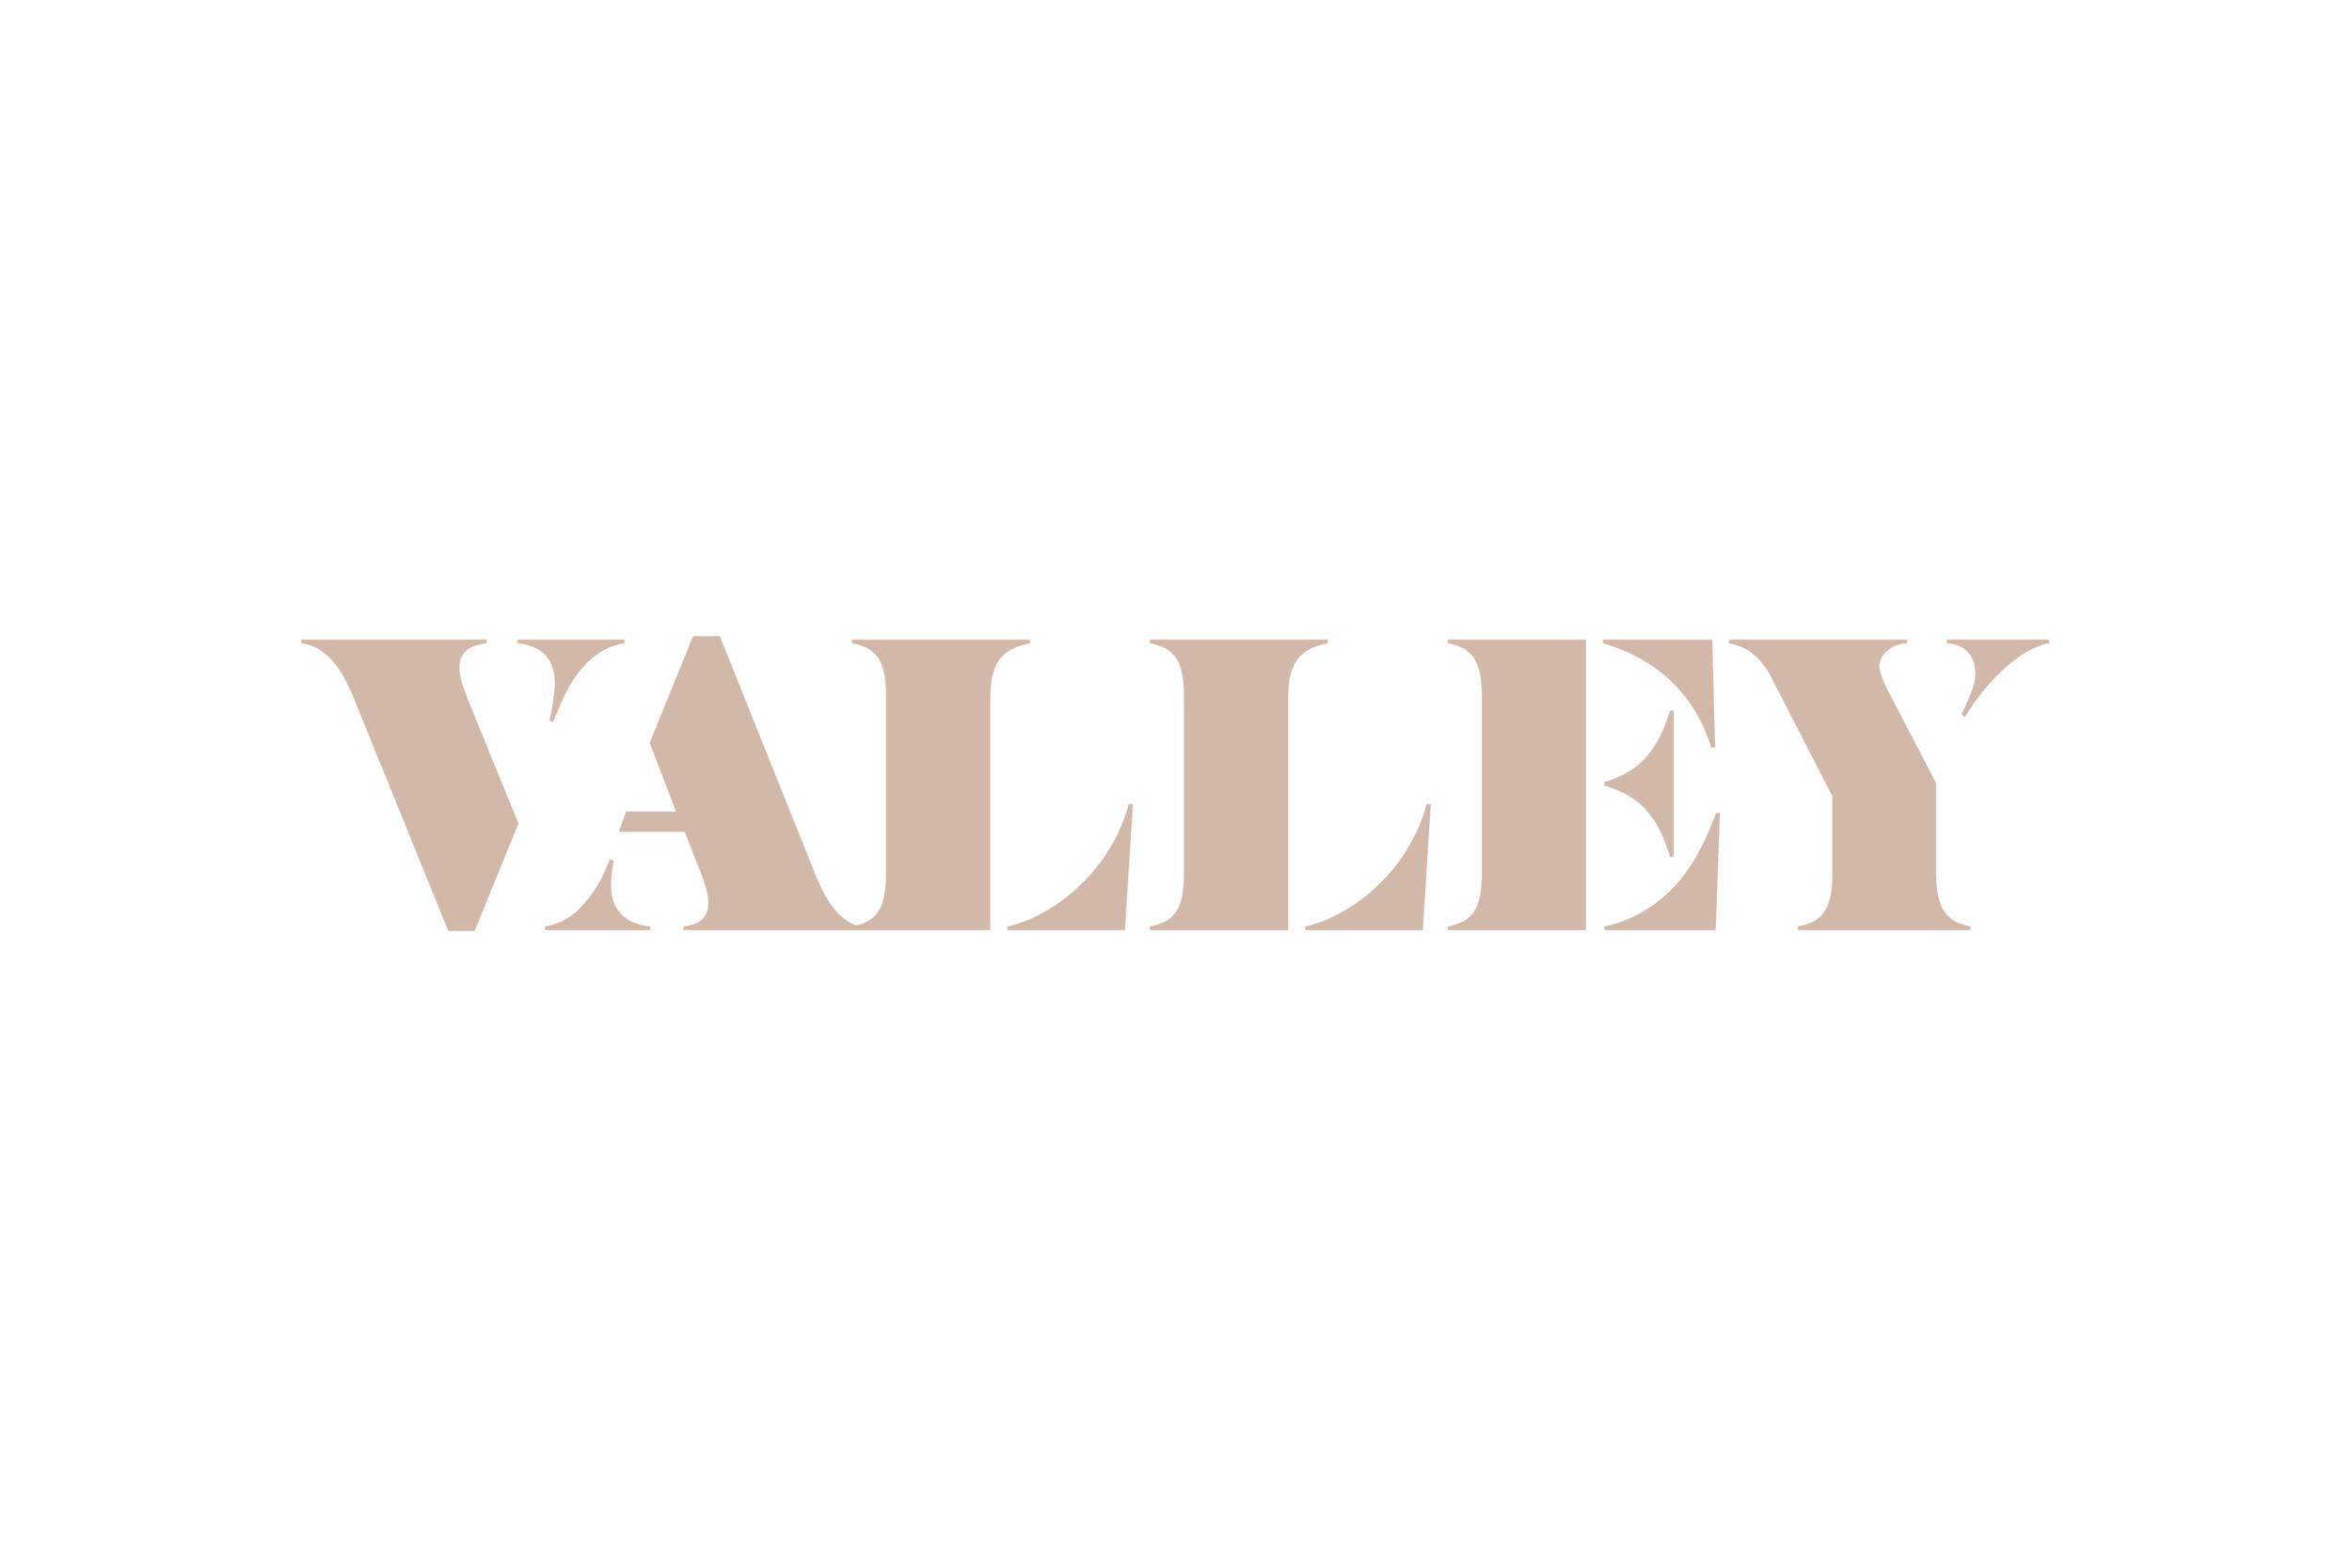 valley.png